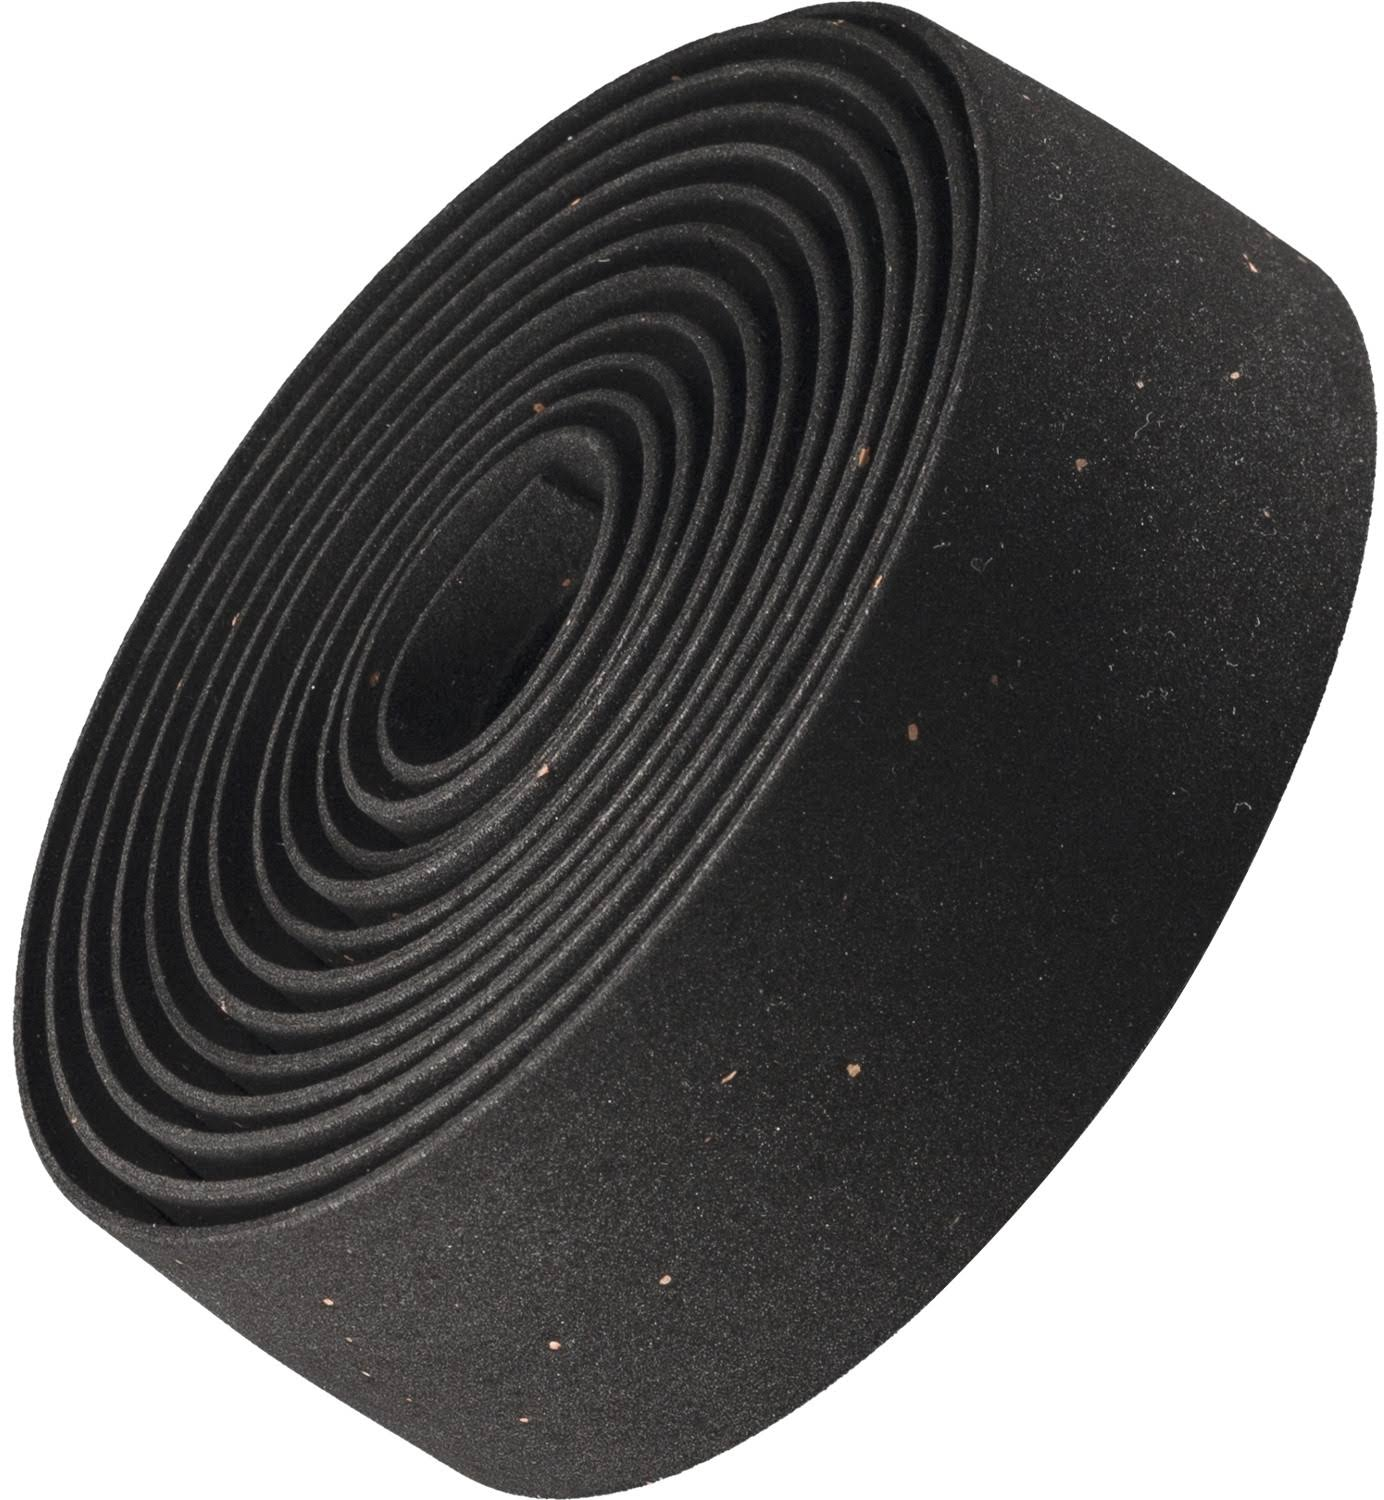 Bontrager Double Gel Cork Handlebar Tape - Black